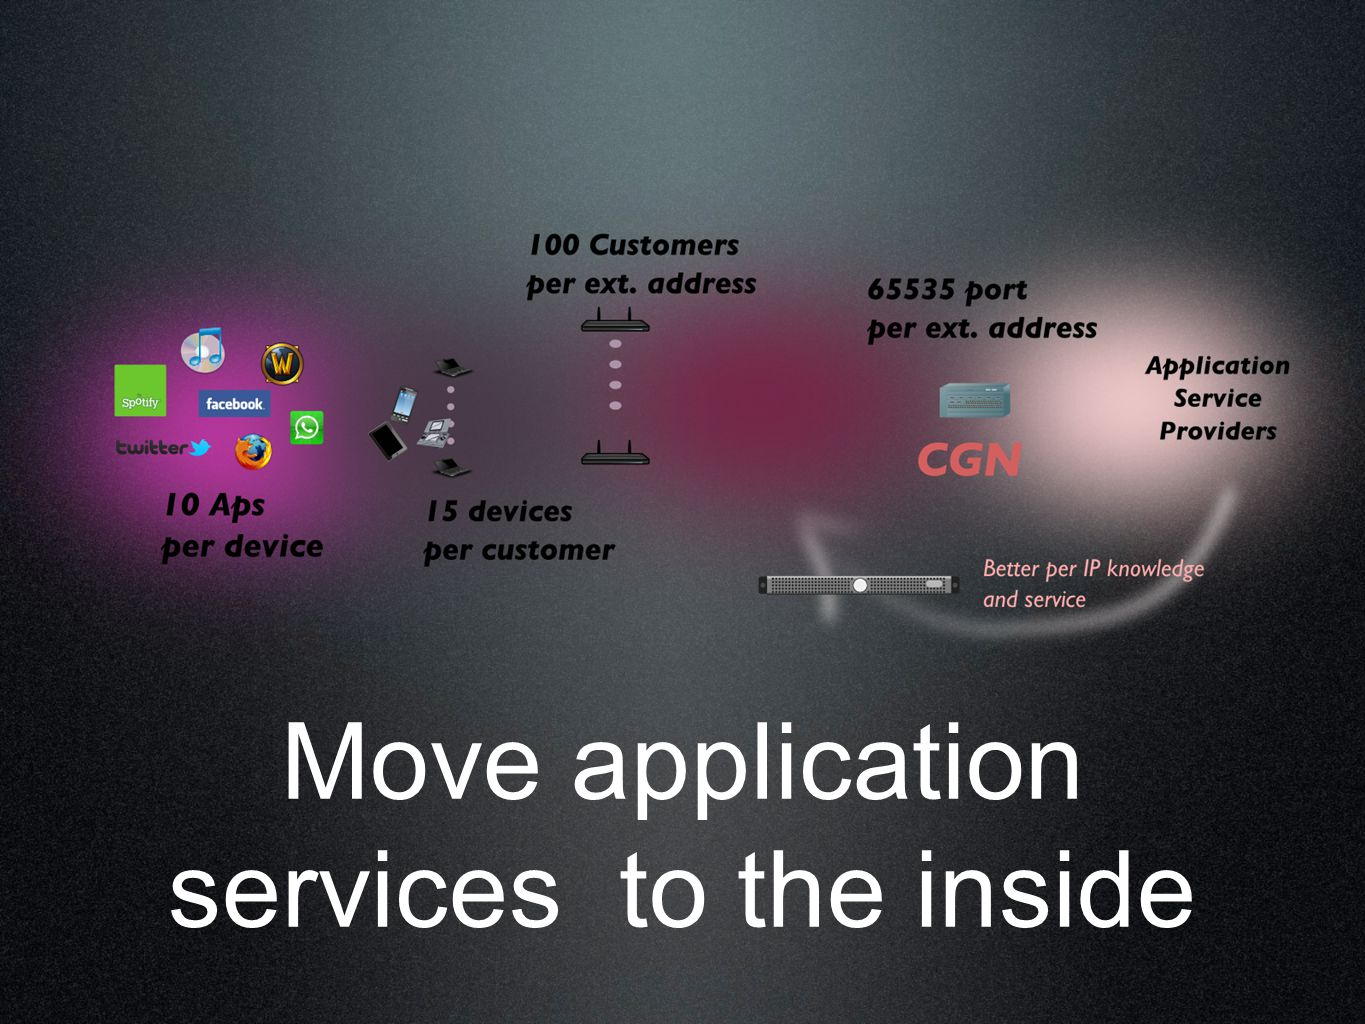 Move application services to the inside